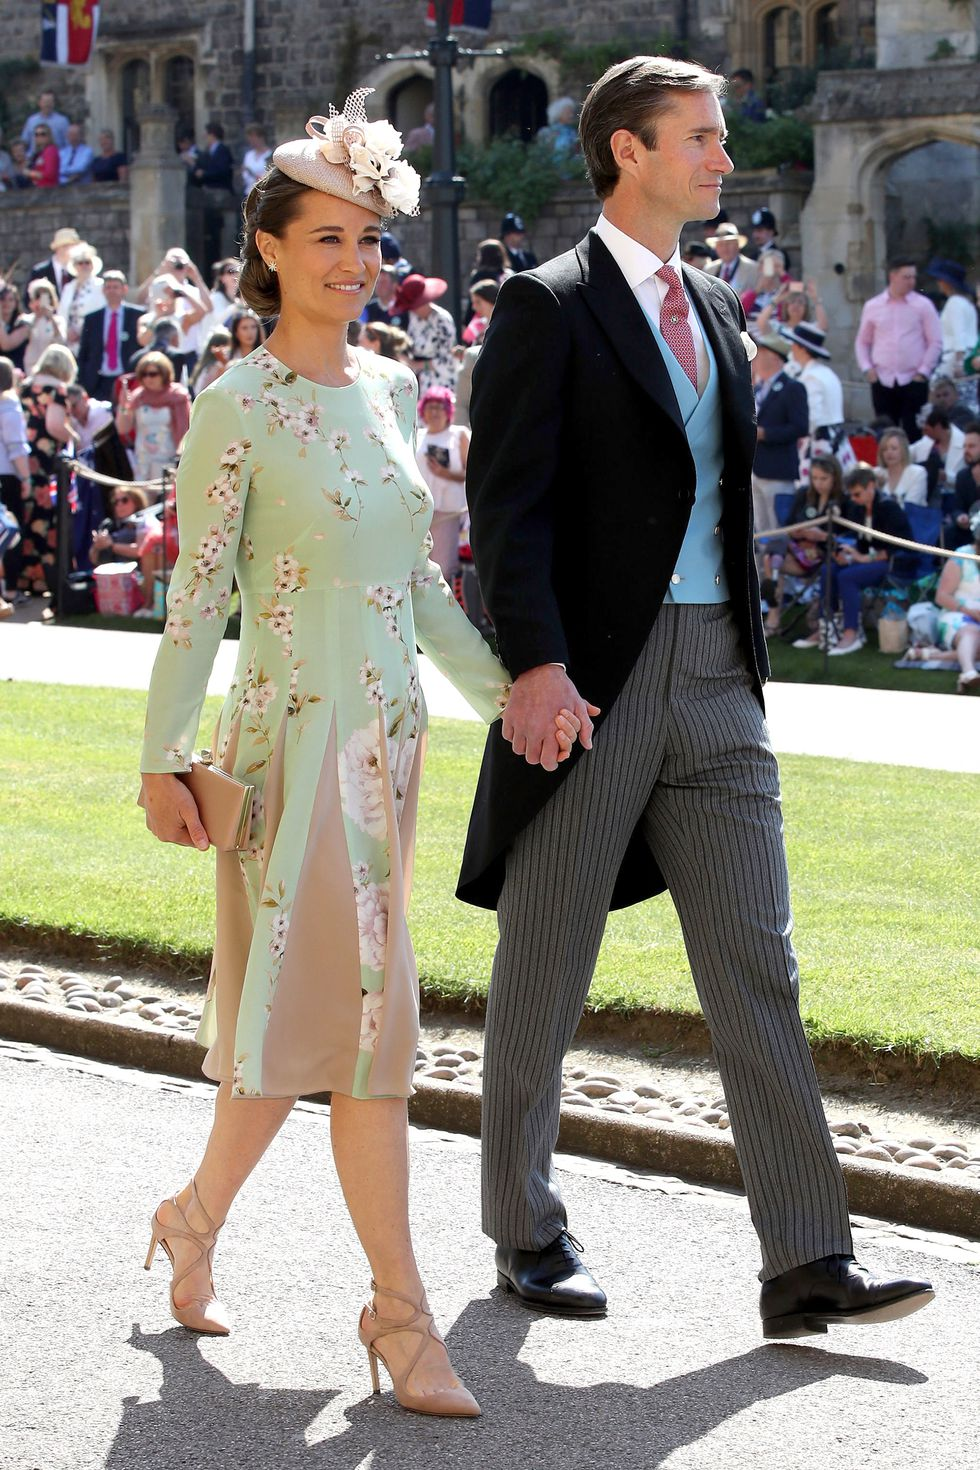 wedding pippa-middleton-james-matthews-1526738985